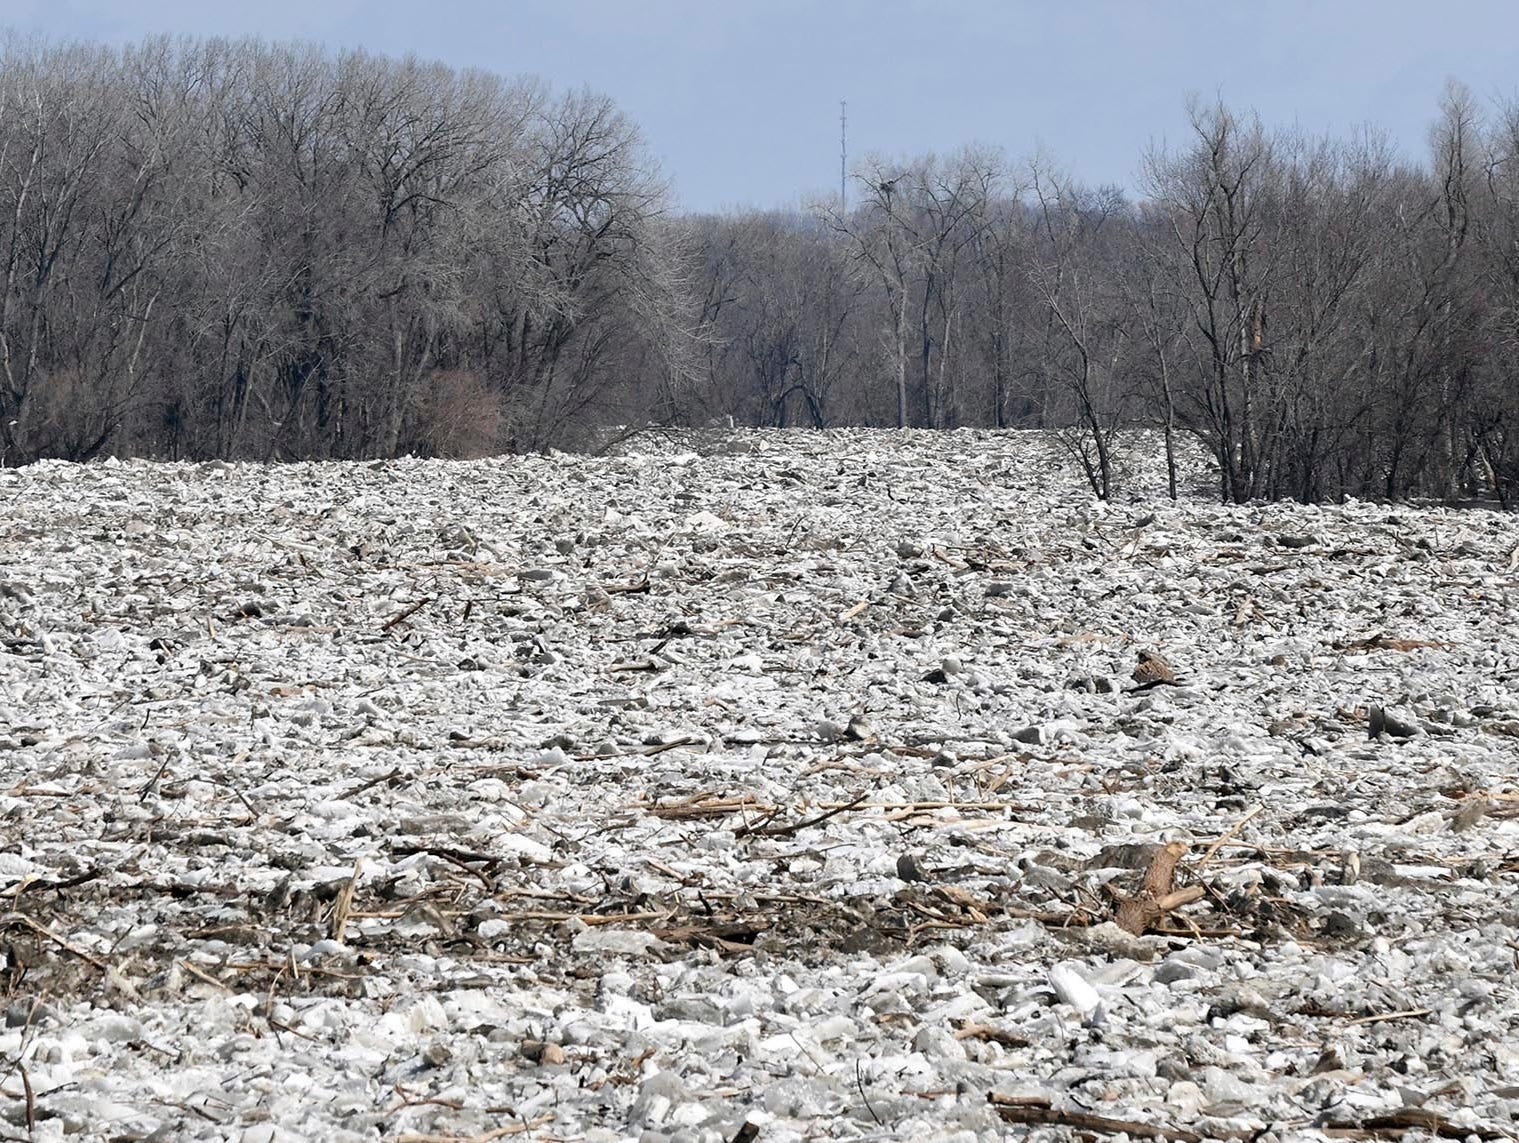 A massive ice jam clogs up the Minnesota River near Seven Mile Creek Park south of St. Peter, Minn. Wednesday, March 20, 2019.